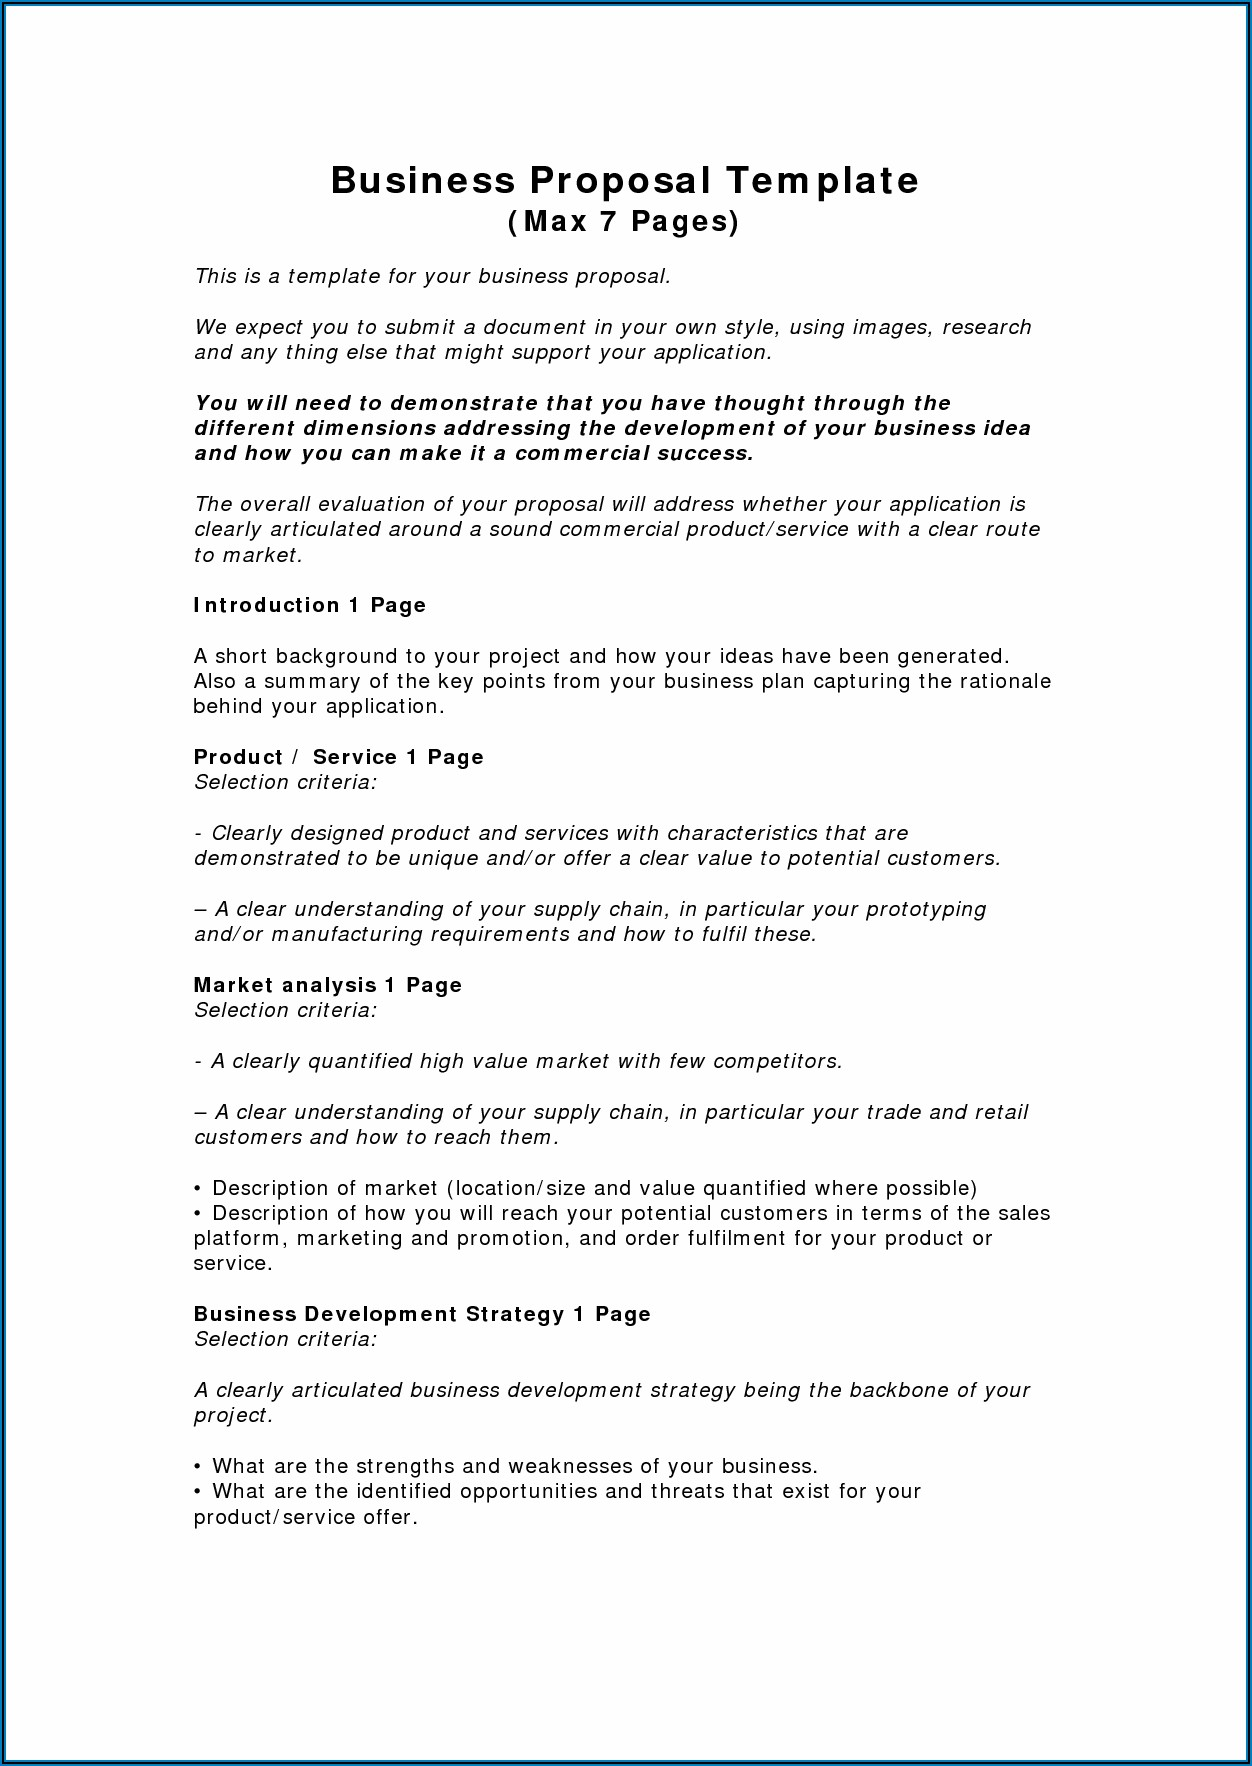 Business Proposal Sample Free Download